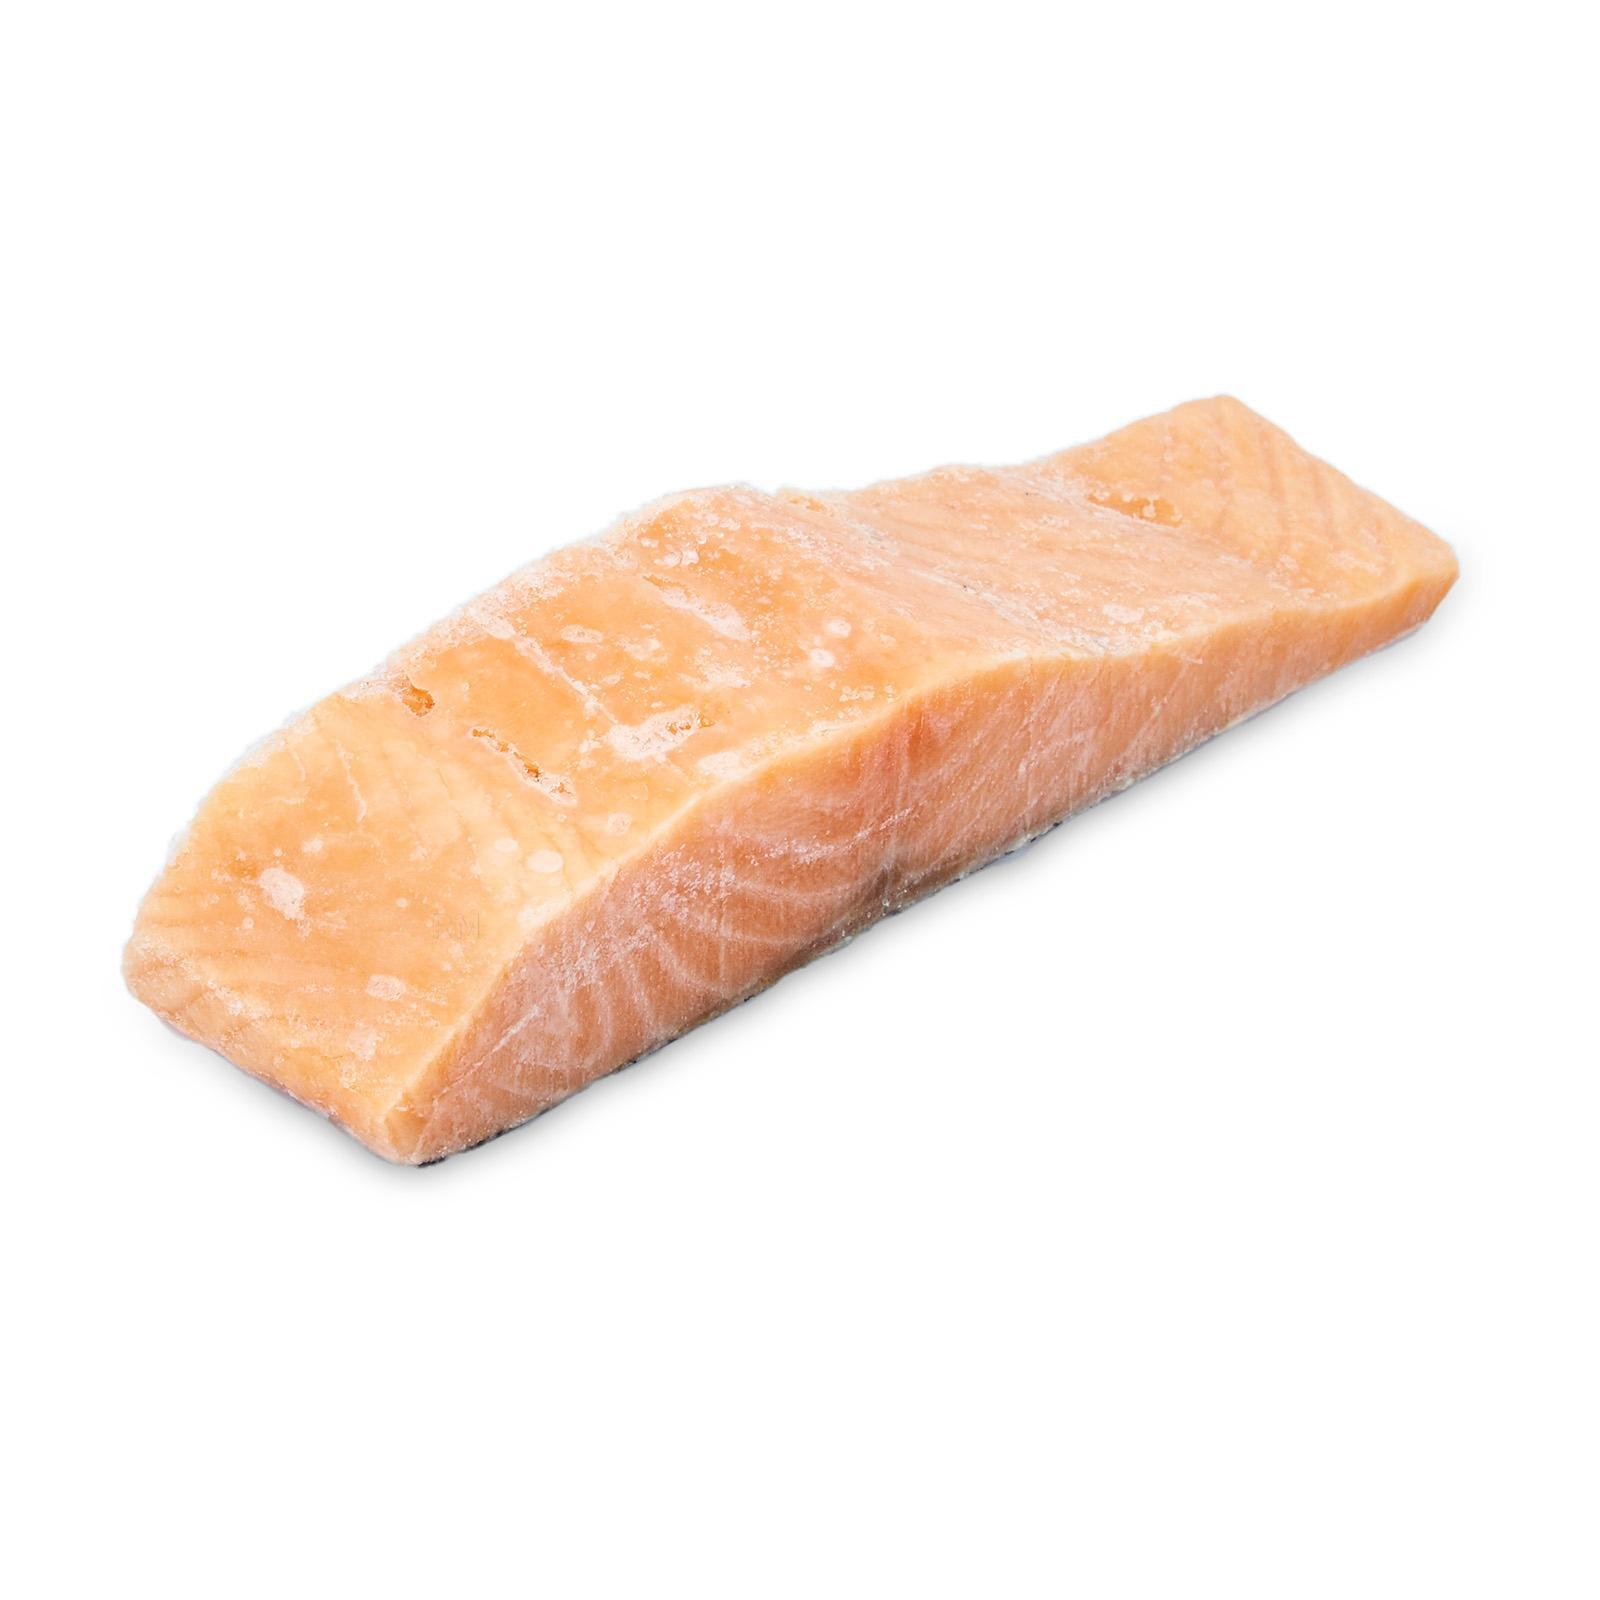 The Fish Net Norwegian Salmon Portion Centre Cut Portion - Frozen By Redmart.